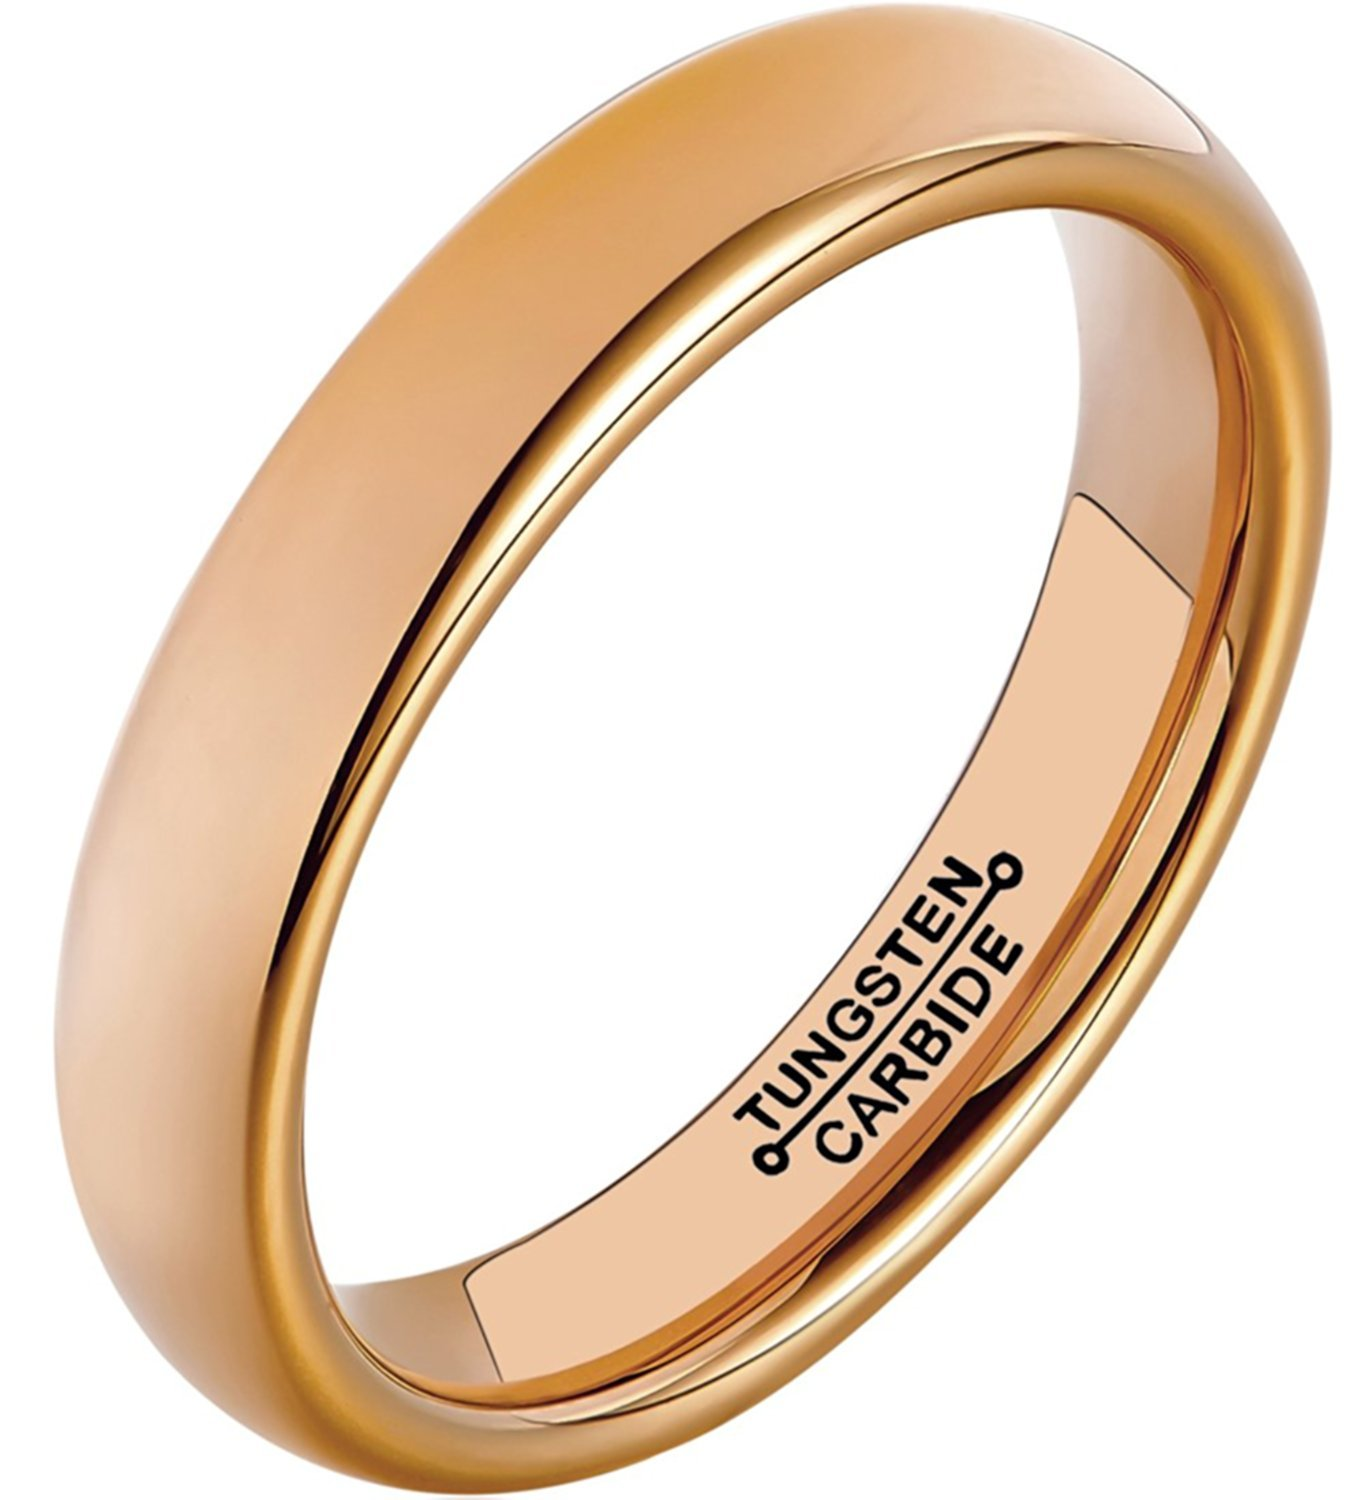 Primary image for 4mm Tungsten Wedding Ring Band Rose Gold Plated Polished Dome Comfort Fit